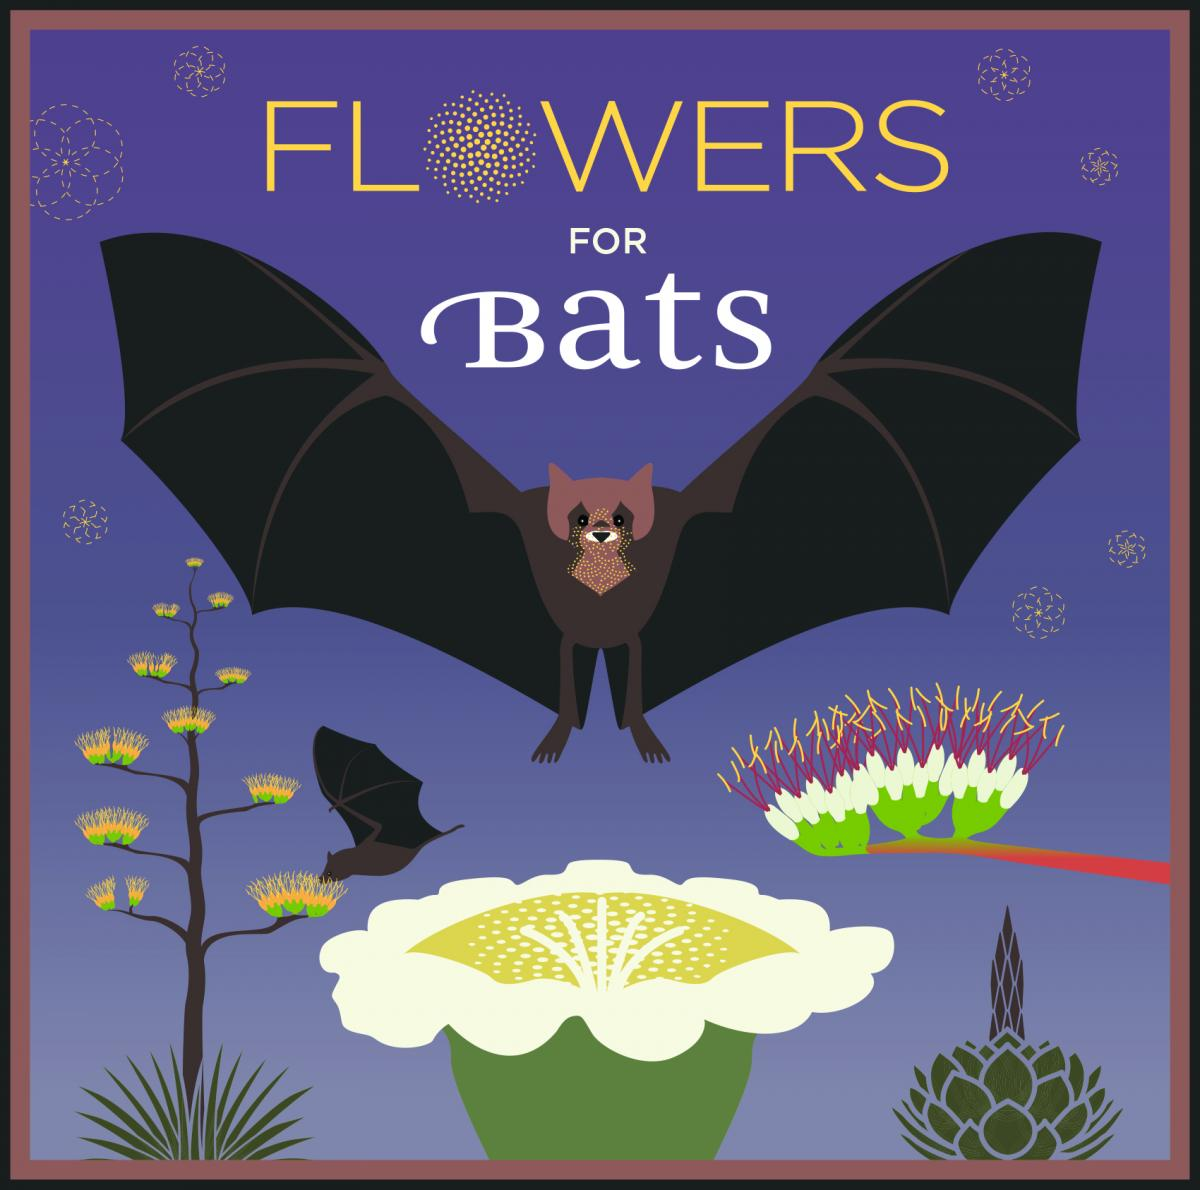 Flowers for Bats Logo